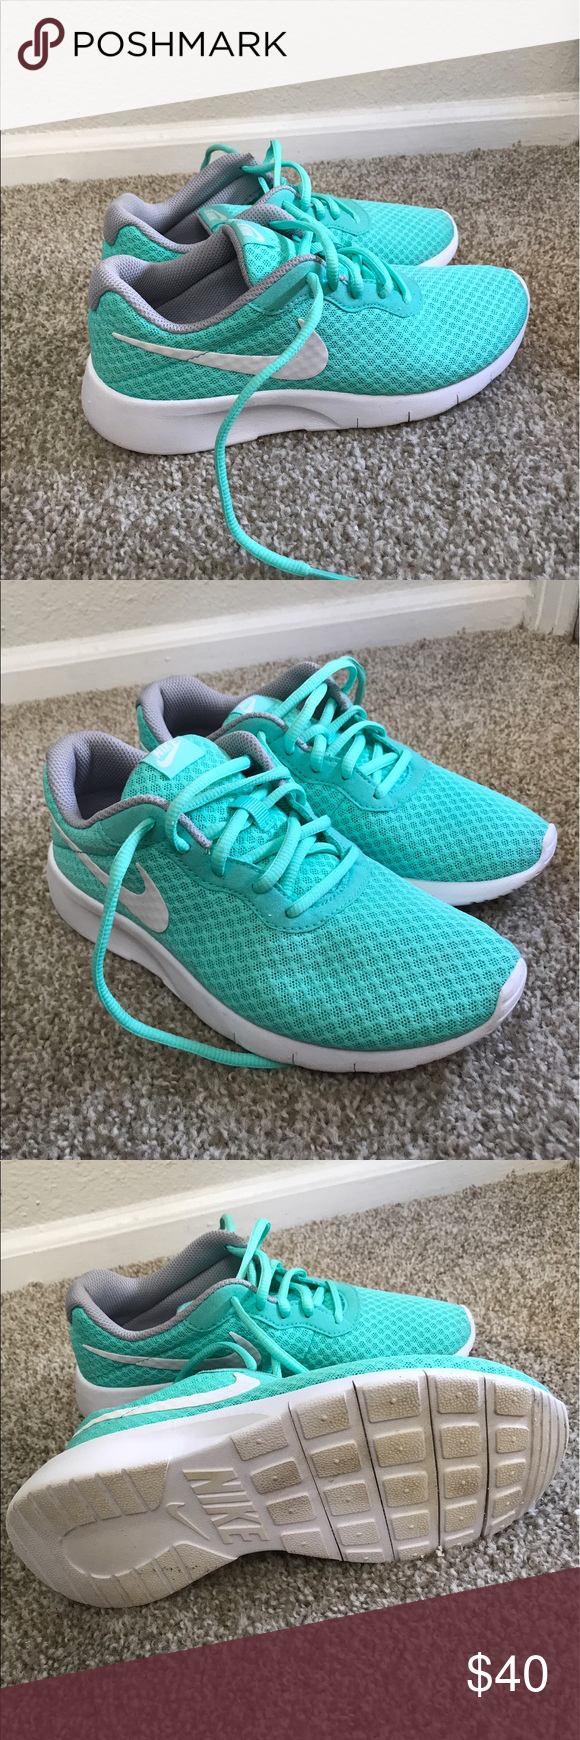 Nike Tanjun Turquoise White Nike Tanjun Running Shoes Youth Size 4 5 Women S Size 6 5 Limited Wear Nike Shoes Ath Tretorn Sneaker Clothes Design Nike Tanjun